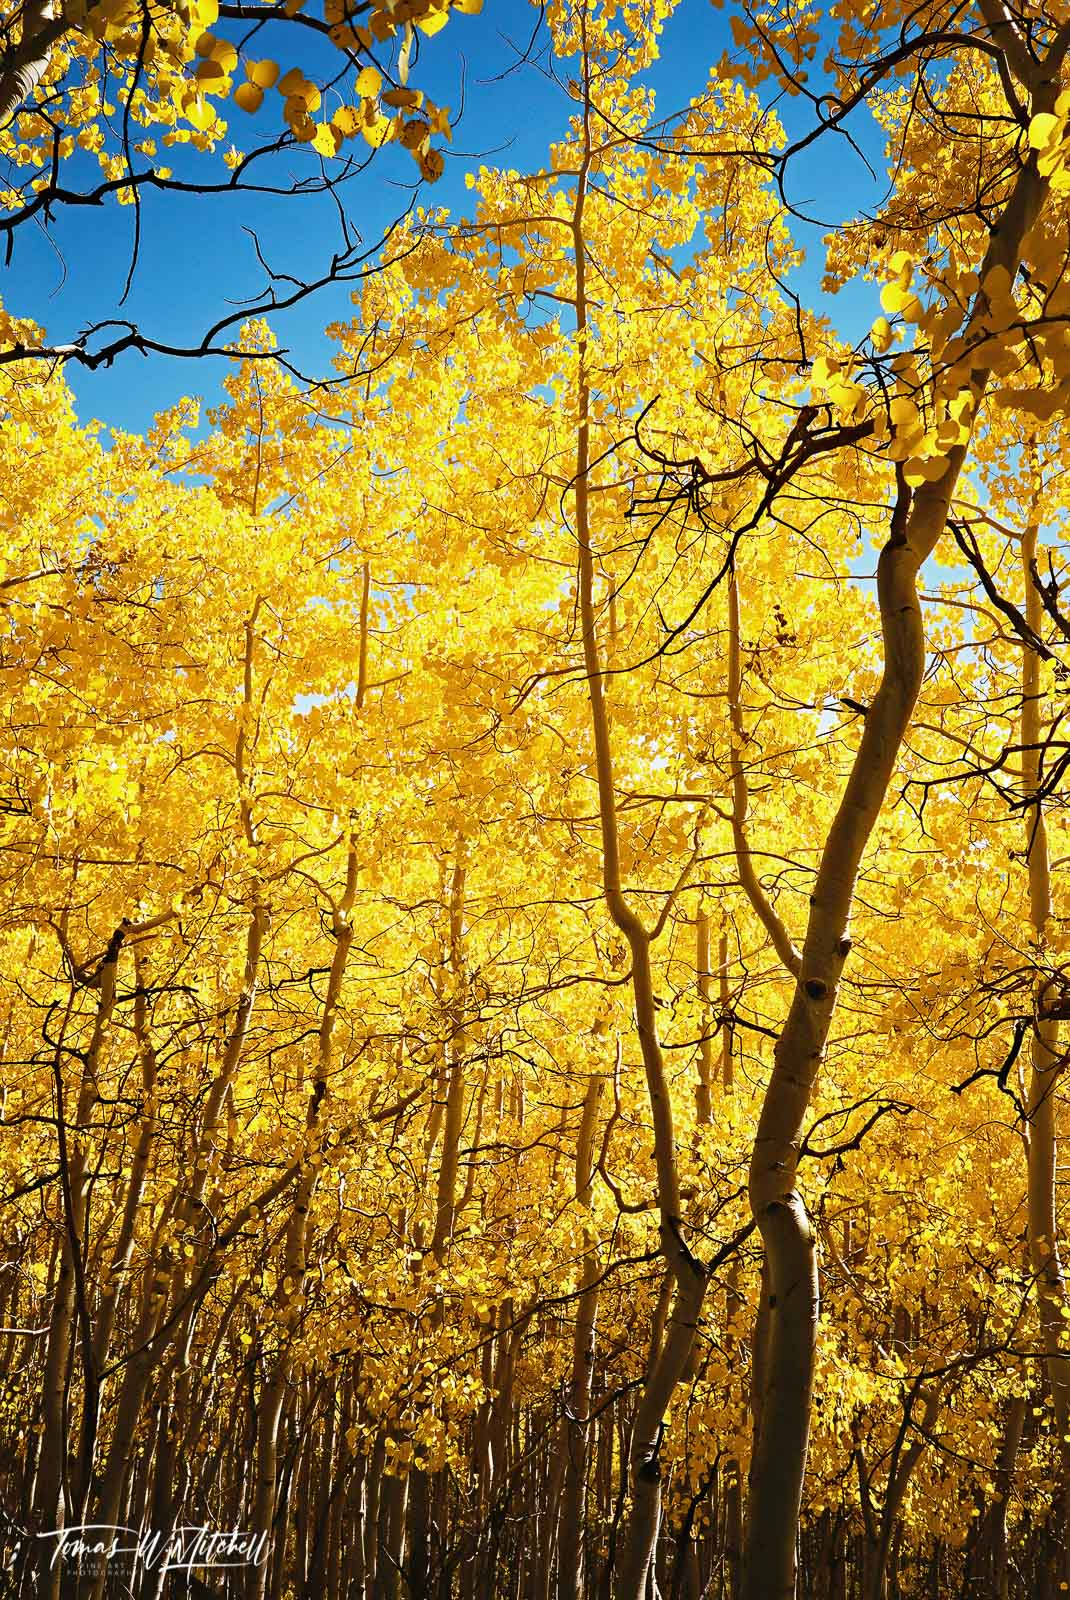 limited edition, fine art, prints, photograph, film, utah, wasatch cache national forest, forest, uinta, mountains, golden, aspen, grove, leaves, branches, blue, sky, pentax, photo